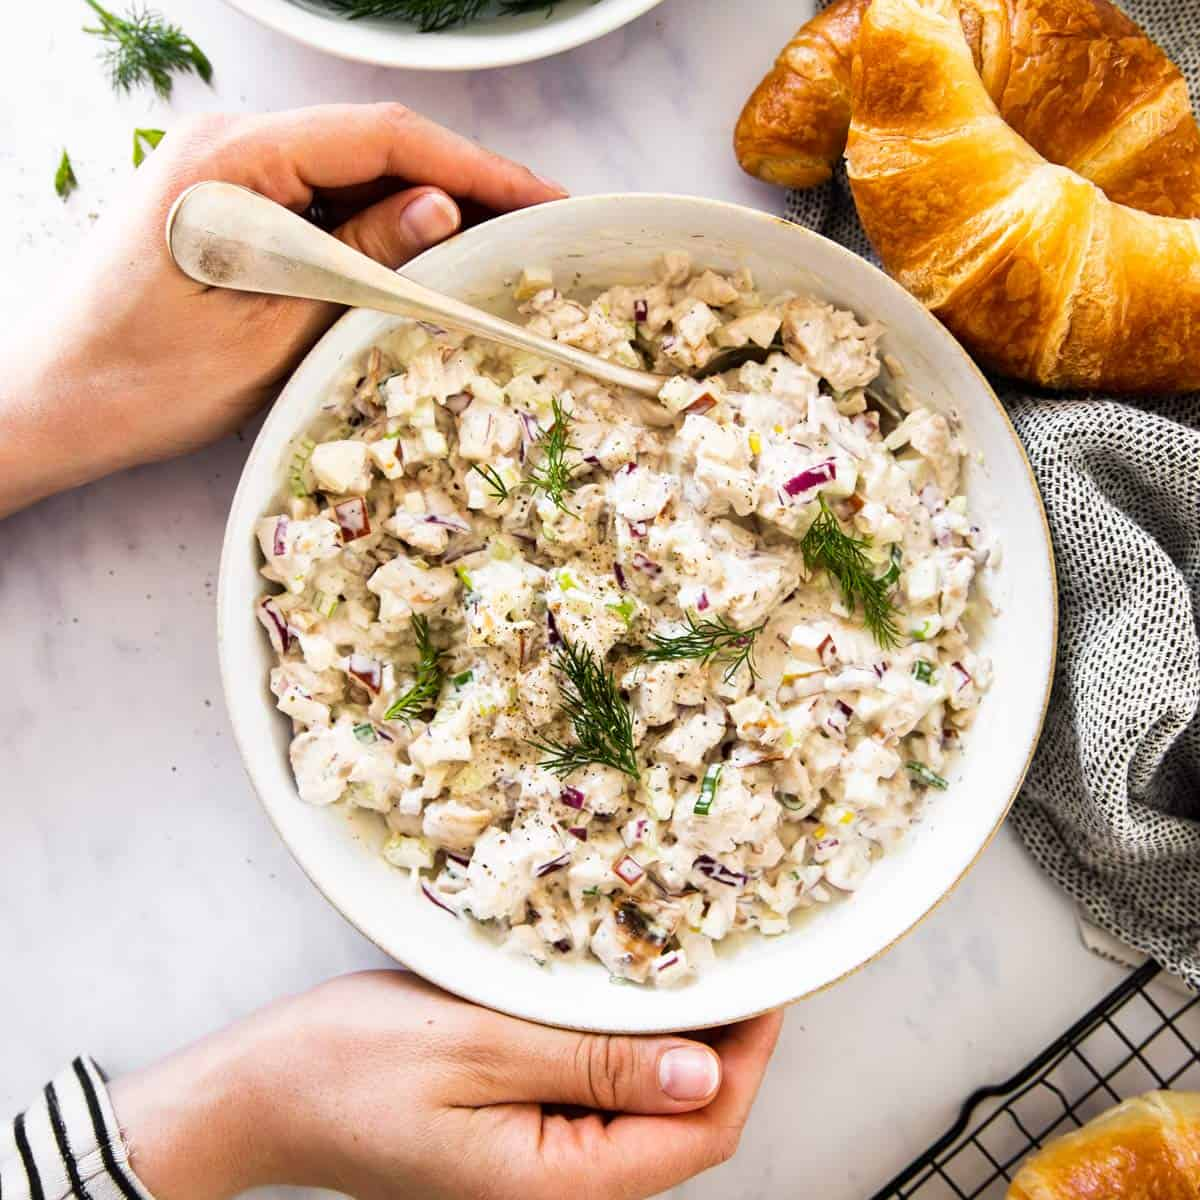 top down view on female hands holding white bowl with chicken salad next to croissants